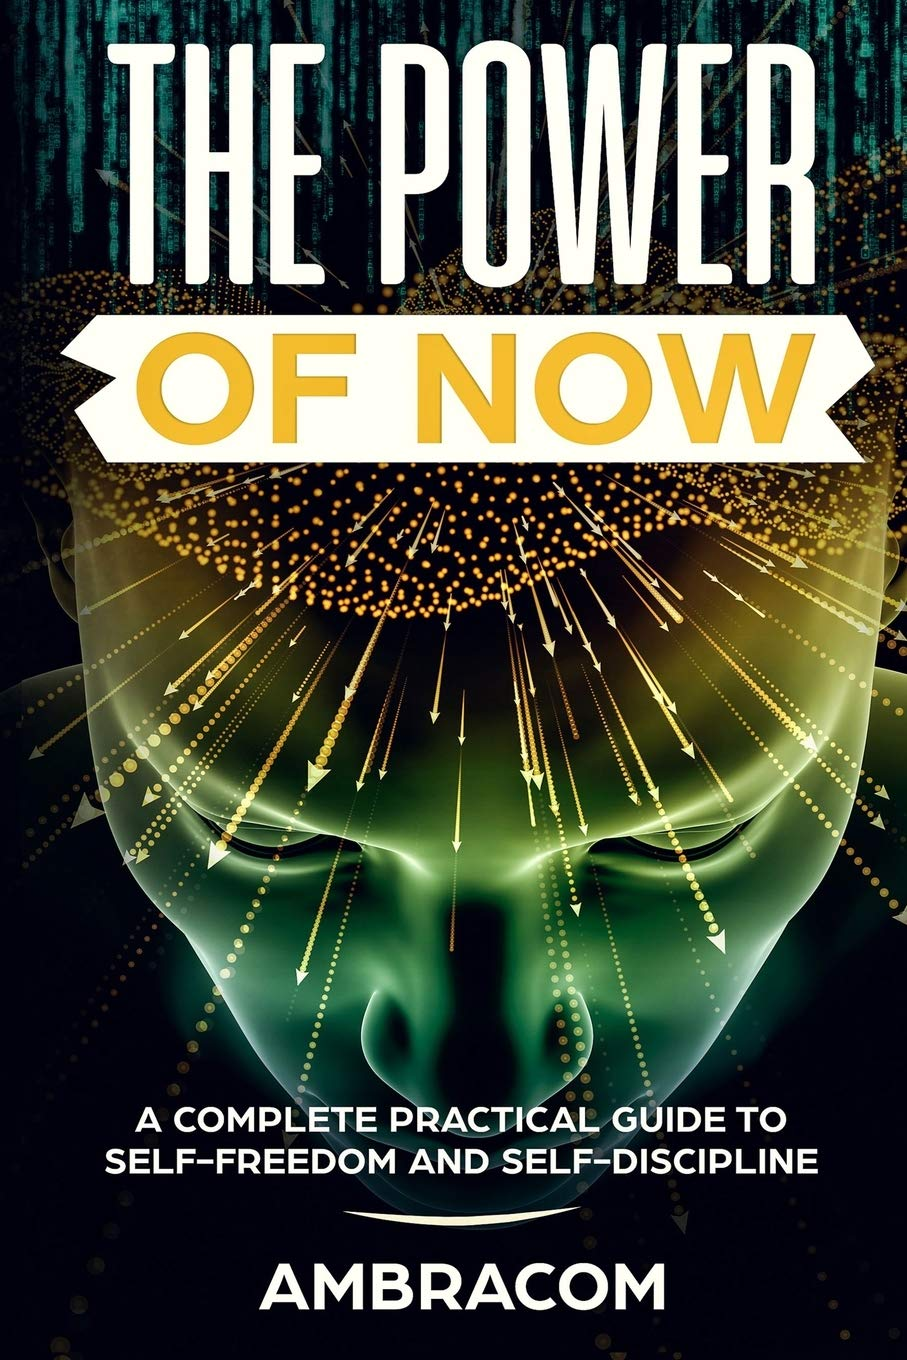 Image OfThe Power Of Now: Power Of Now: A Complete Practical Guide To Self-Freedom And Self-Discipline,Effect Eye Day Crawdads Edu...